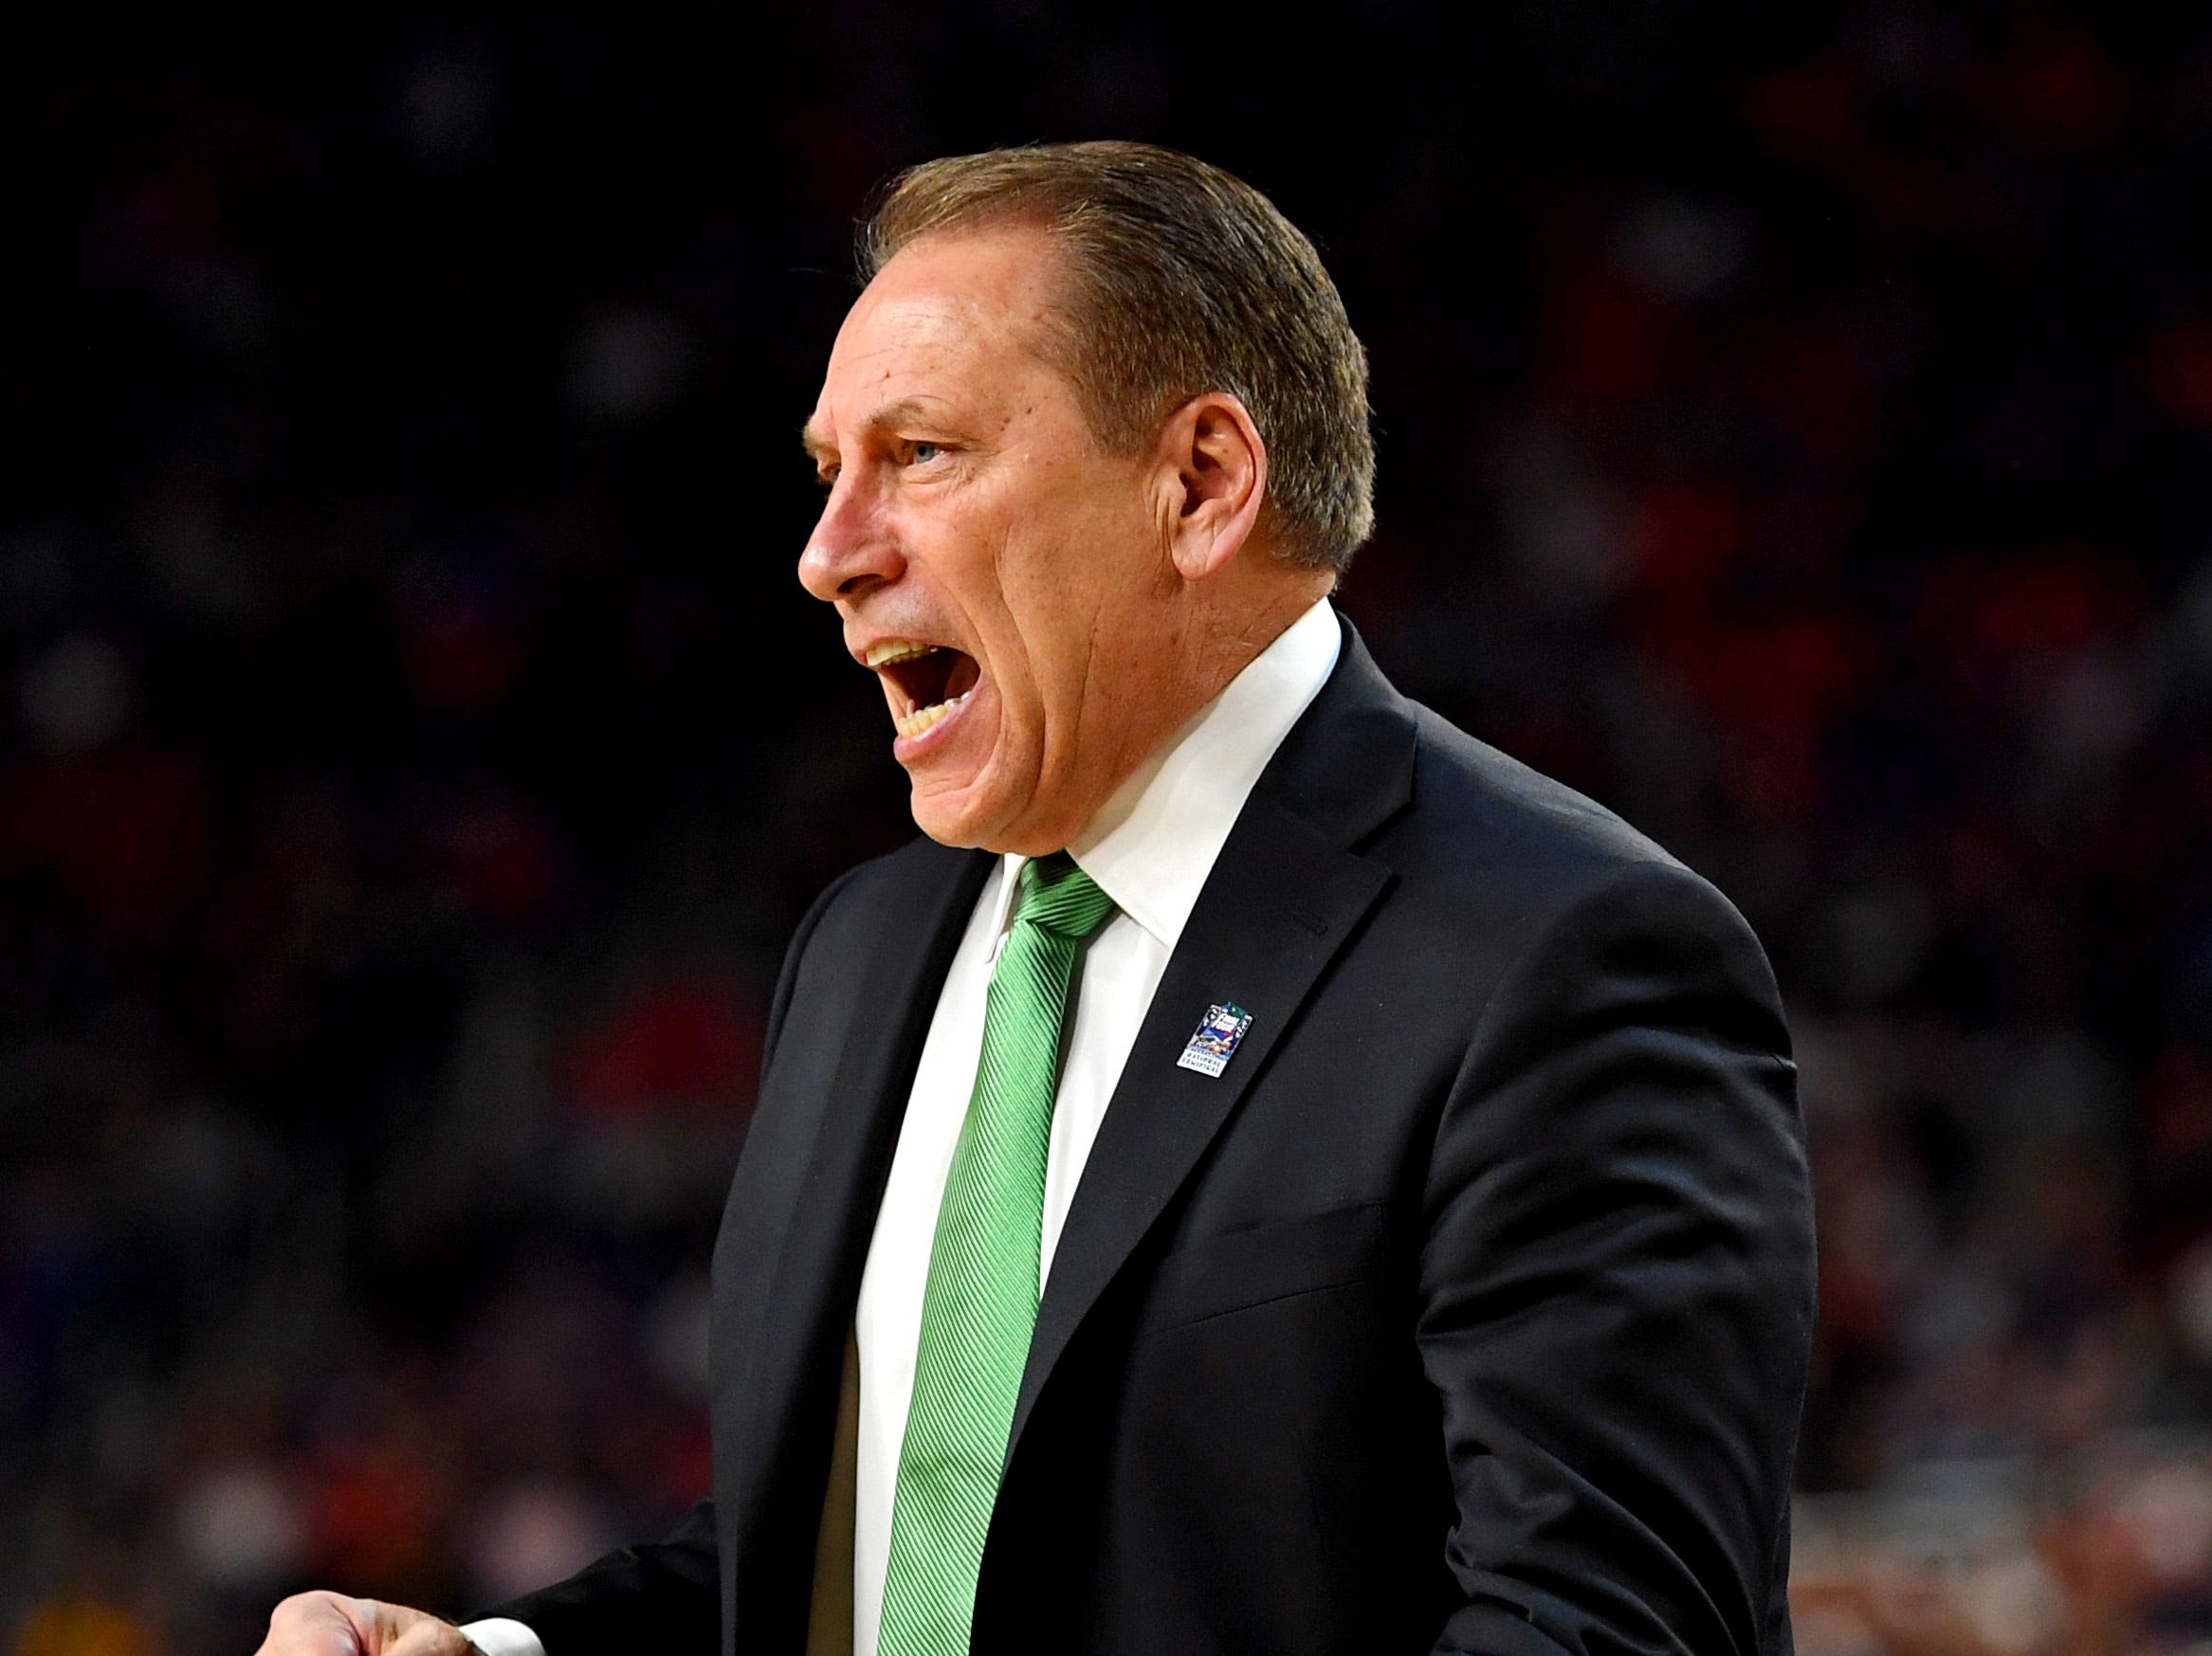 Apr 6, 2019; Minneapolis, MN, USA; Michigan State Spartans head coach Tom Izzo reacts during the second half against the Texas Tech Red Raiders in the semifinals of the 2019 men's Final Four at US Bank Stadium. Mandatory Credit: Bob Donnan-USA TODAY Sports